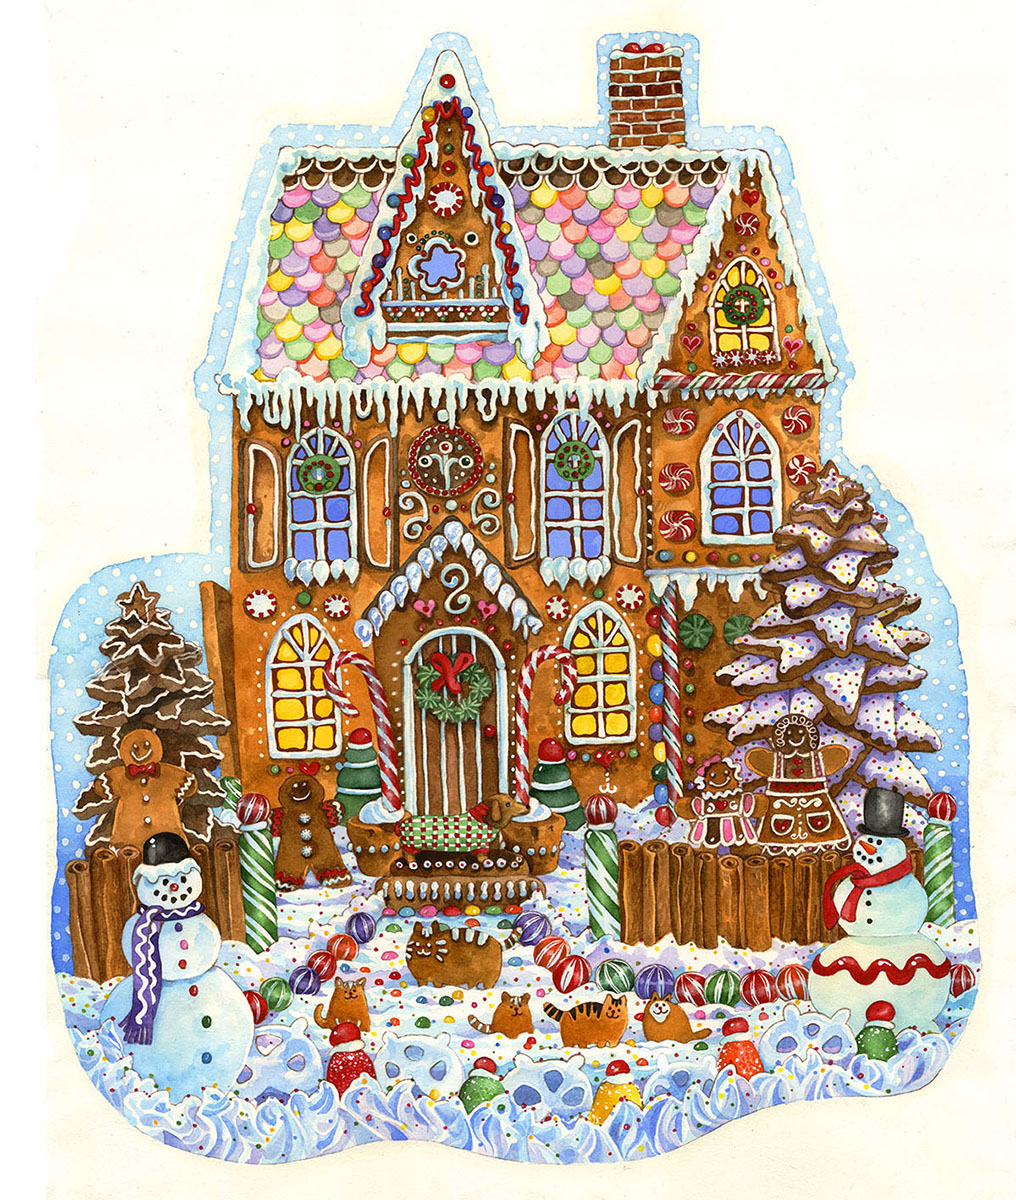 sunsout-wendy-edelson-gingerbread-house-1000-teile-puzzle-sunsout-97179